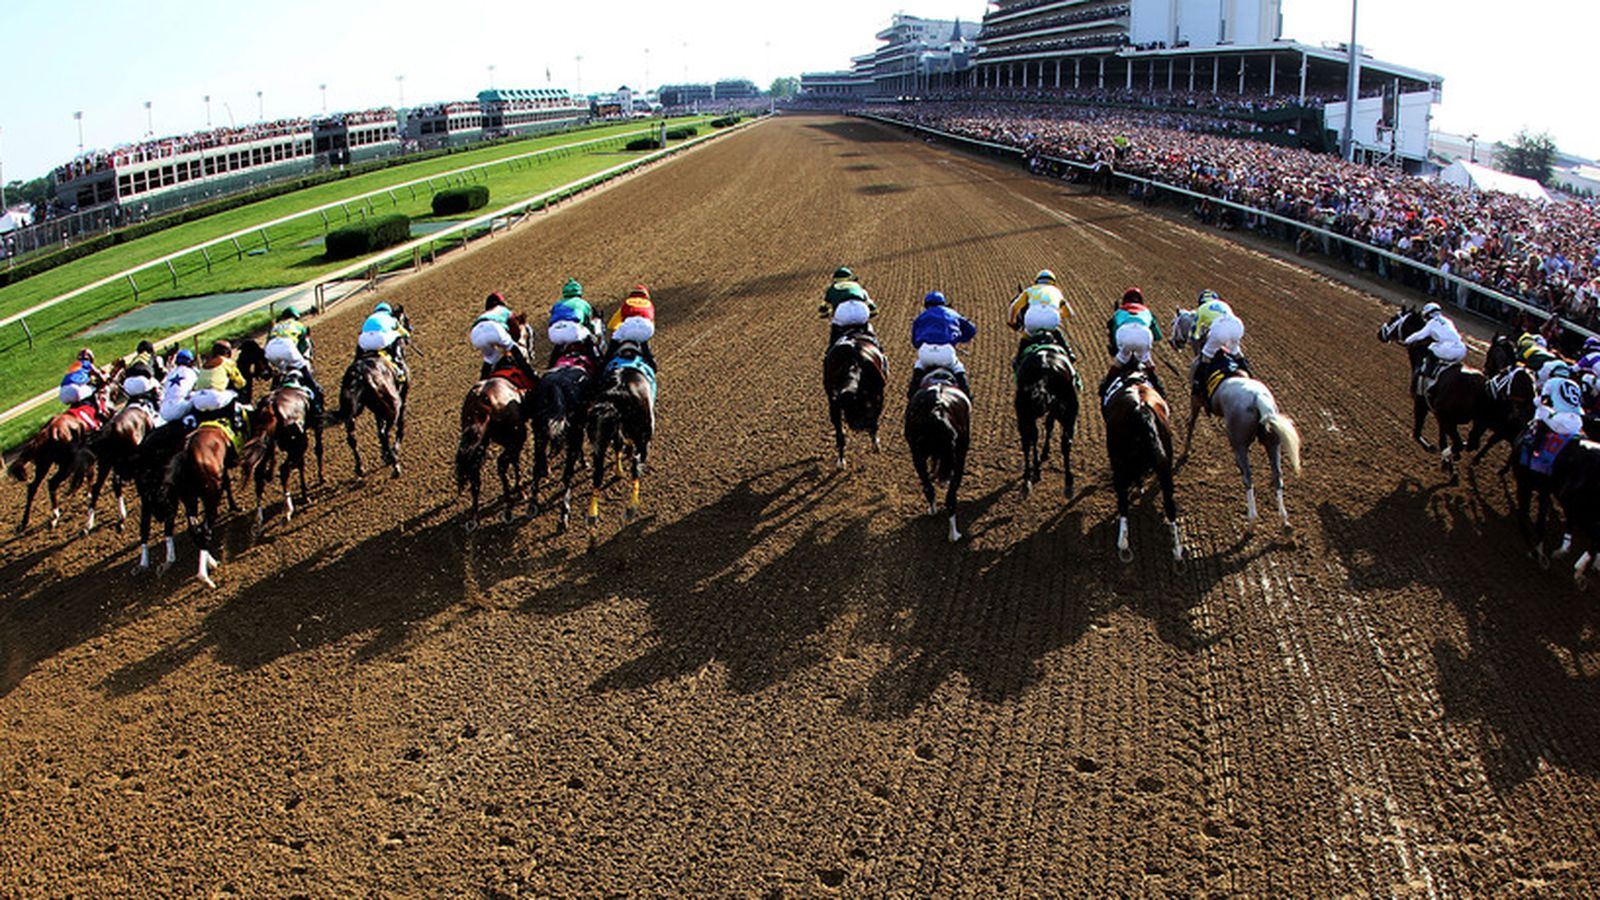 Kentucky Derby 2013 An Early Look At Pace And Down The